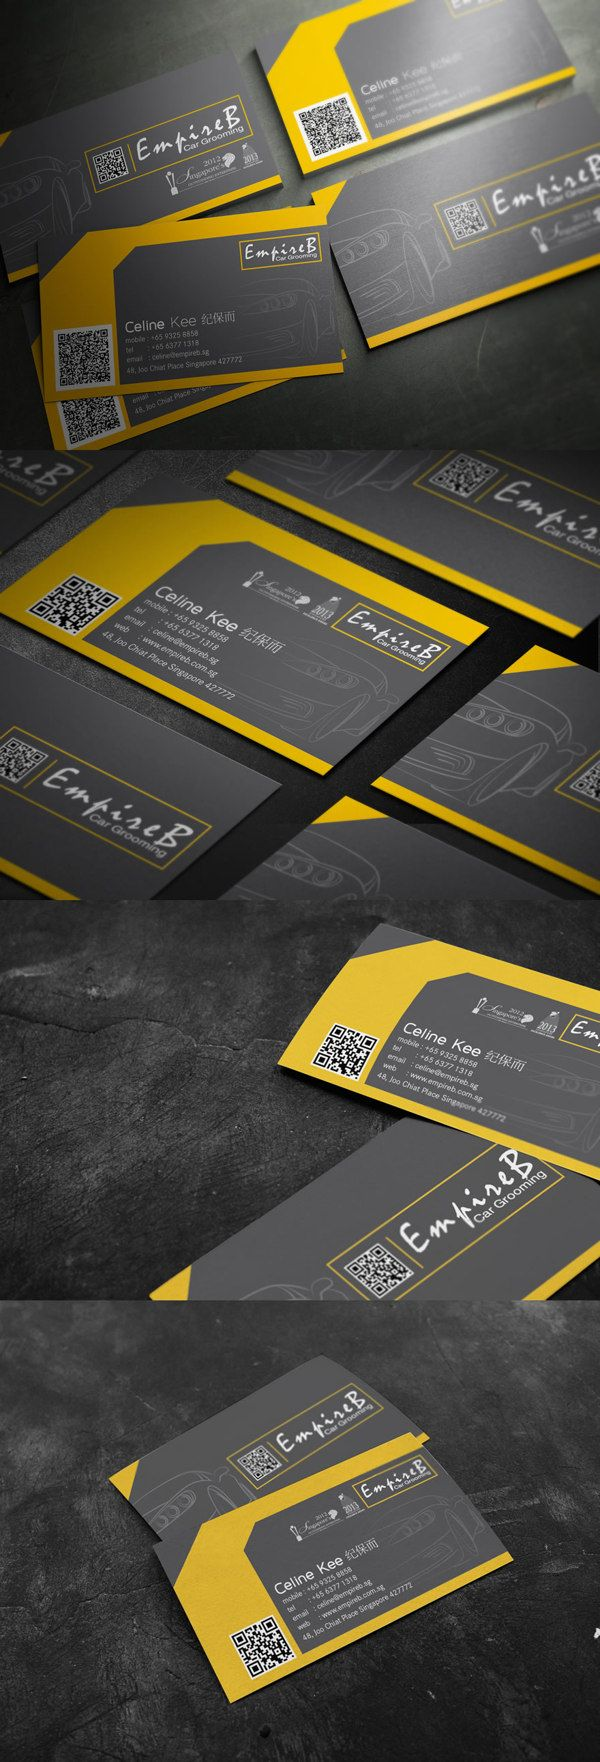 191 Best Business Cards Images On Pinterest Business Cards